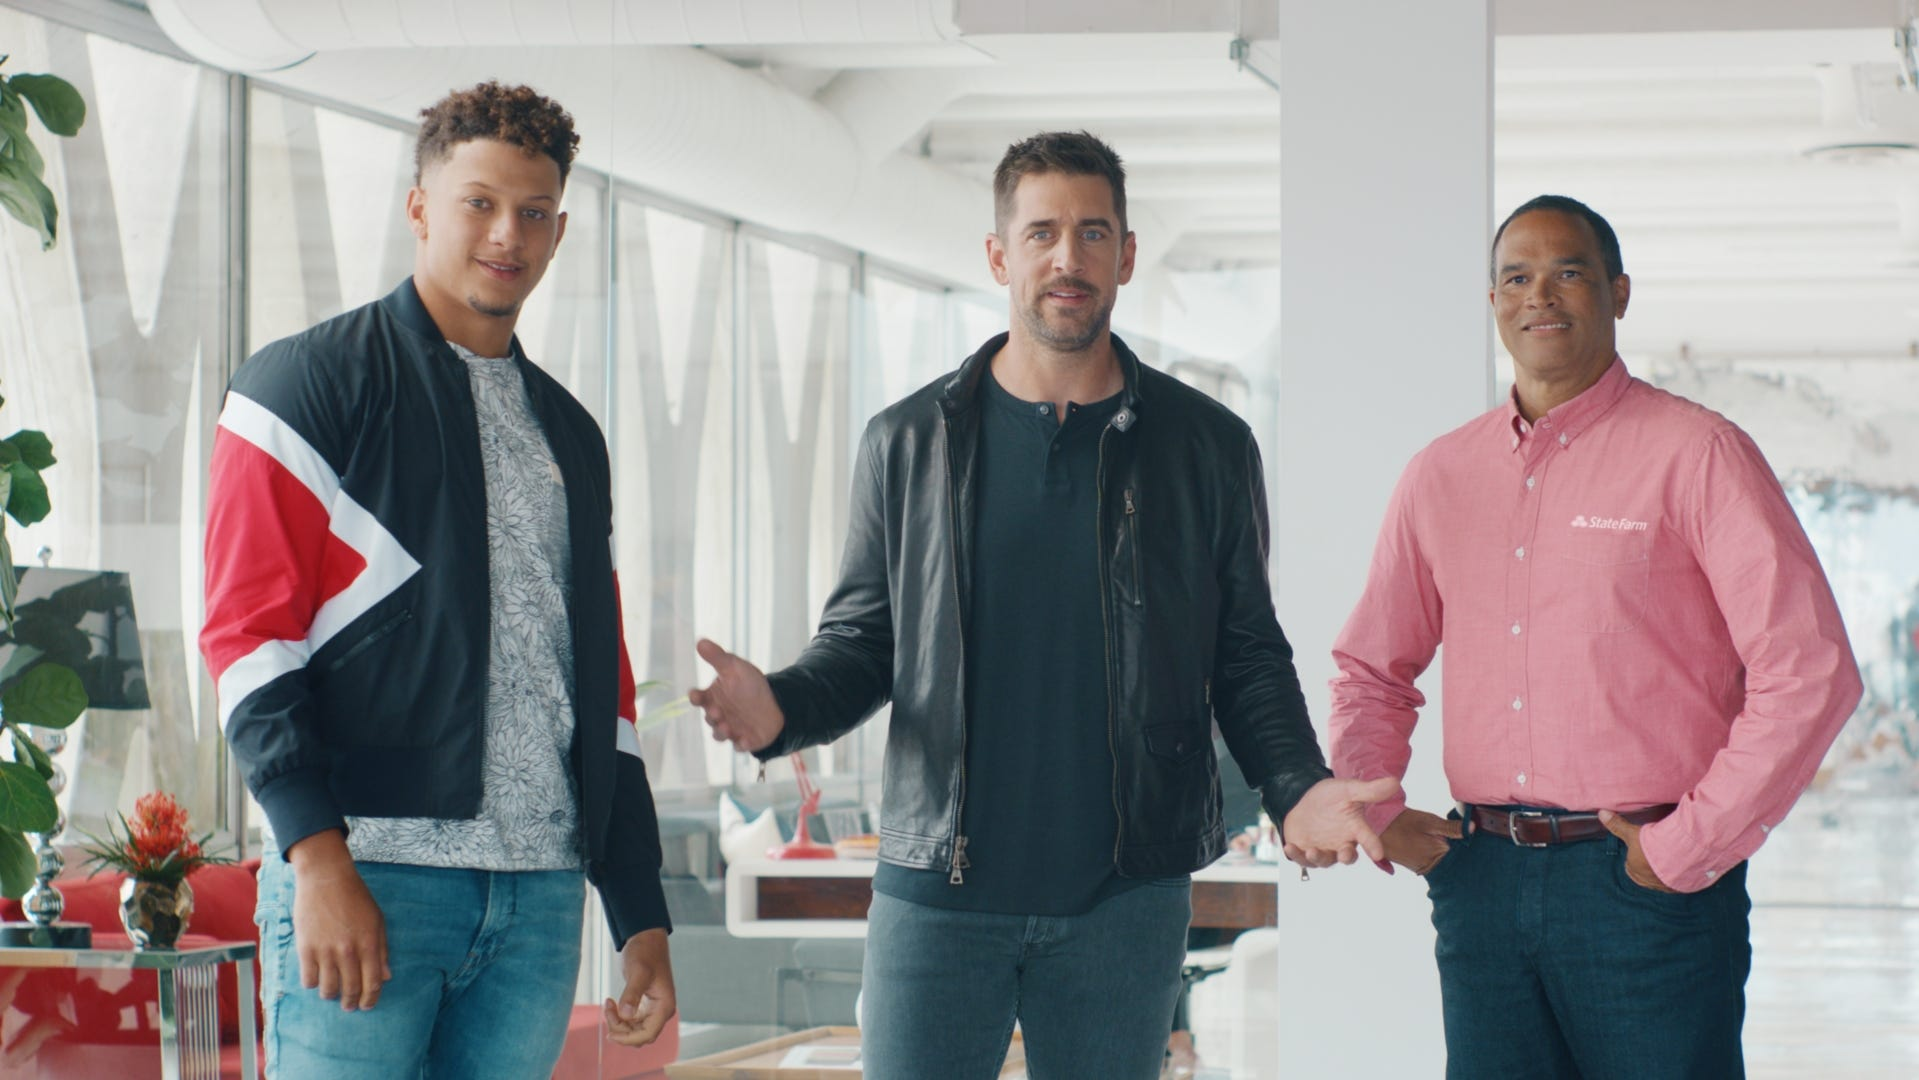 Patrick Mahomes Teams Up With Aaron Rodgers For 2 New State Farm Ads